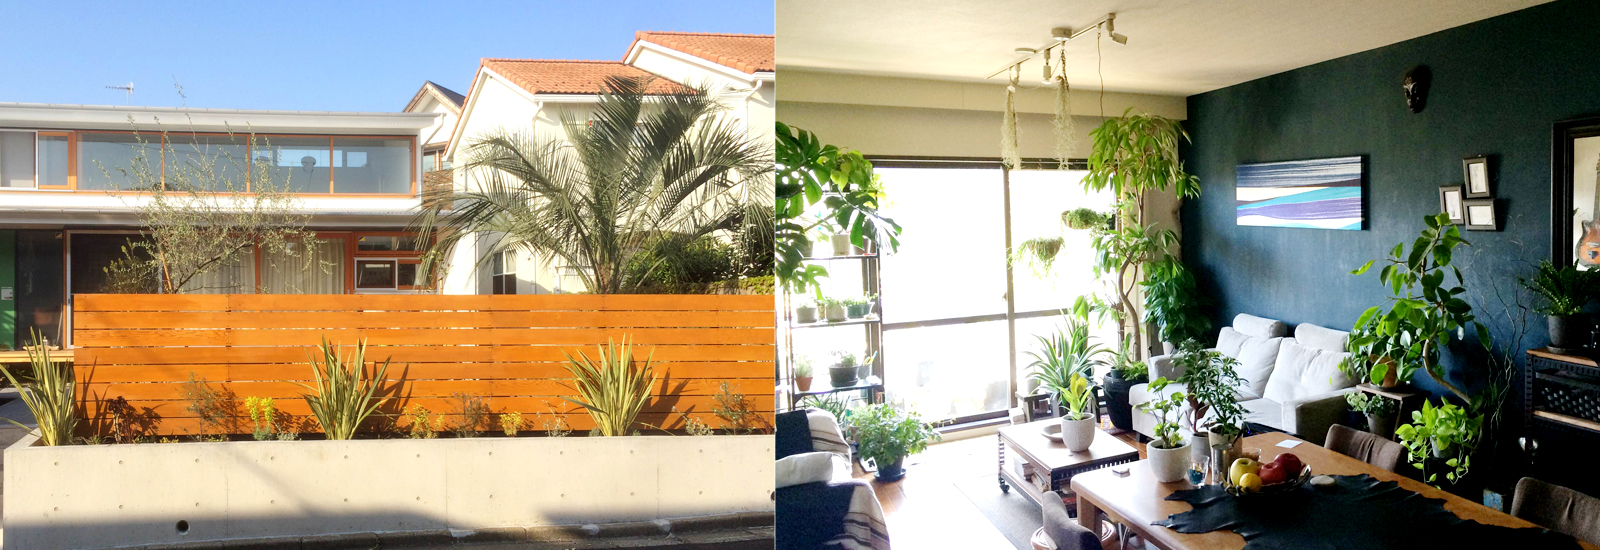 garden trees and house plants